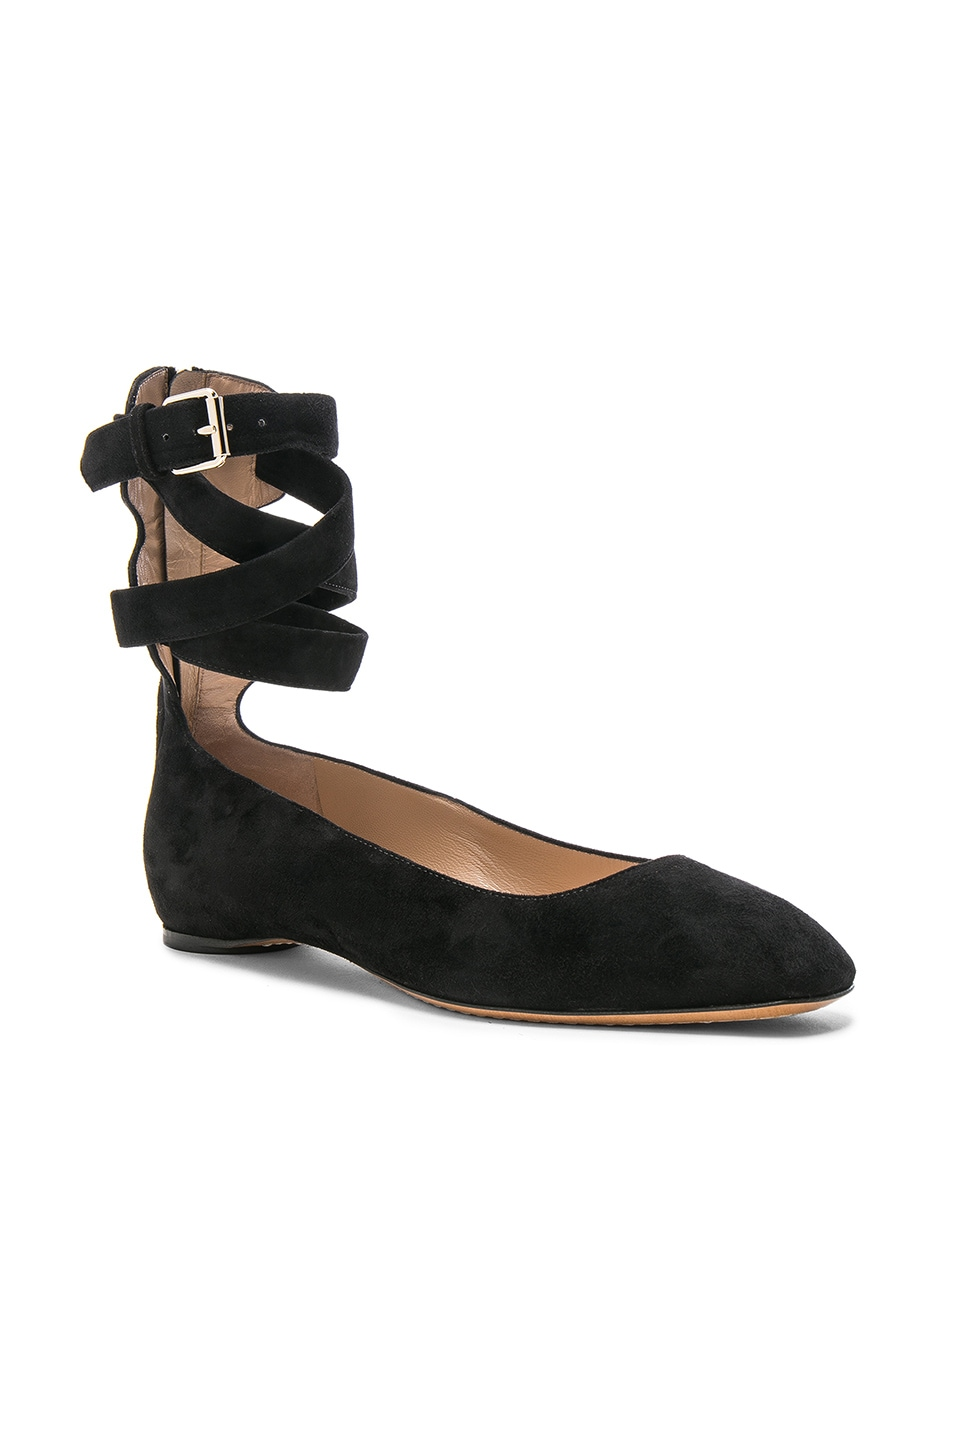 Image 2 of Valentino Suede Ankle Strap Flats in Black